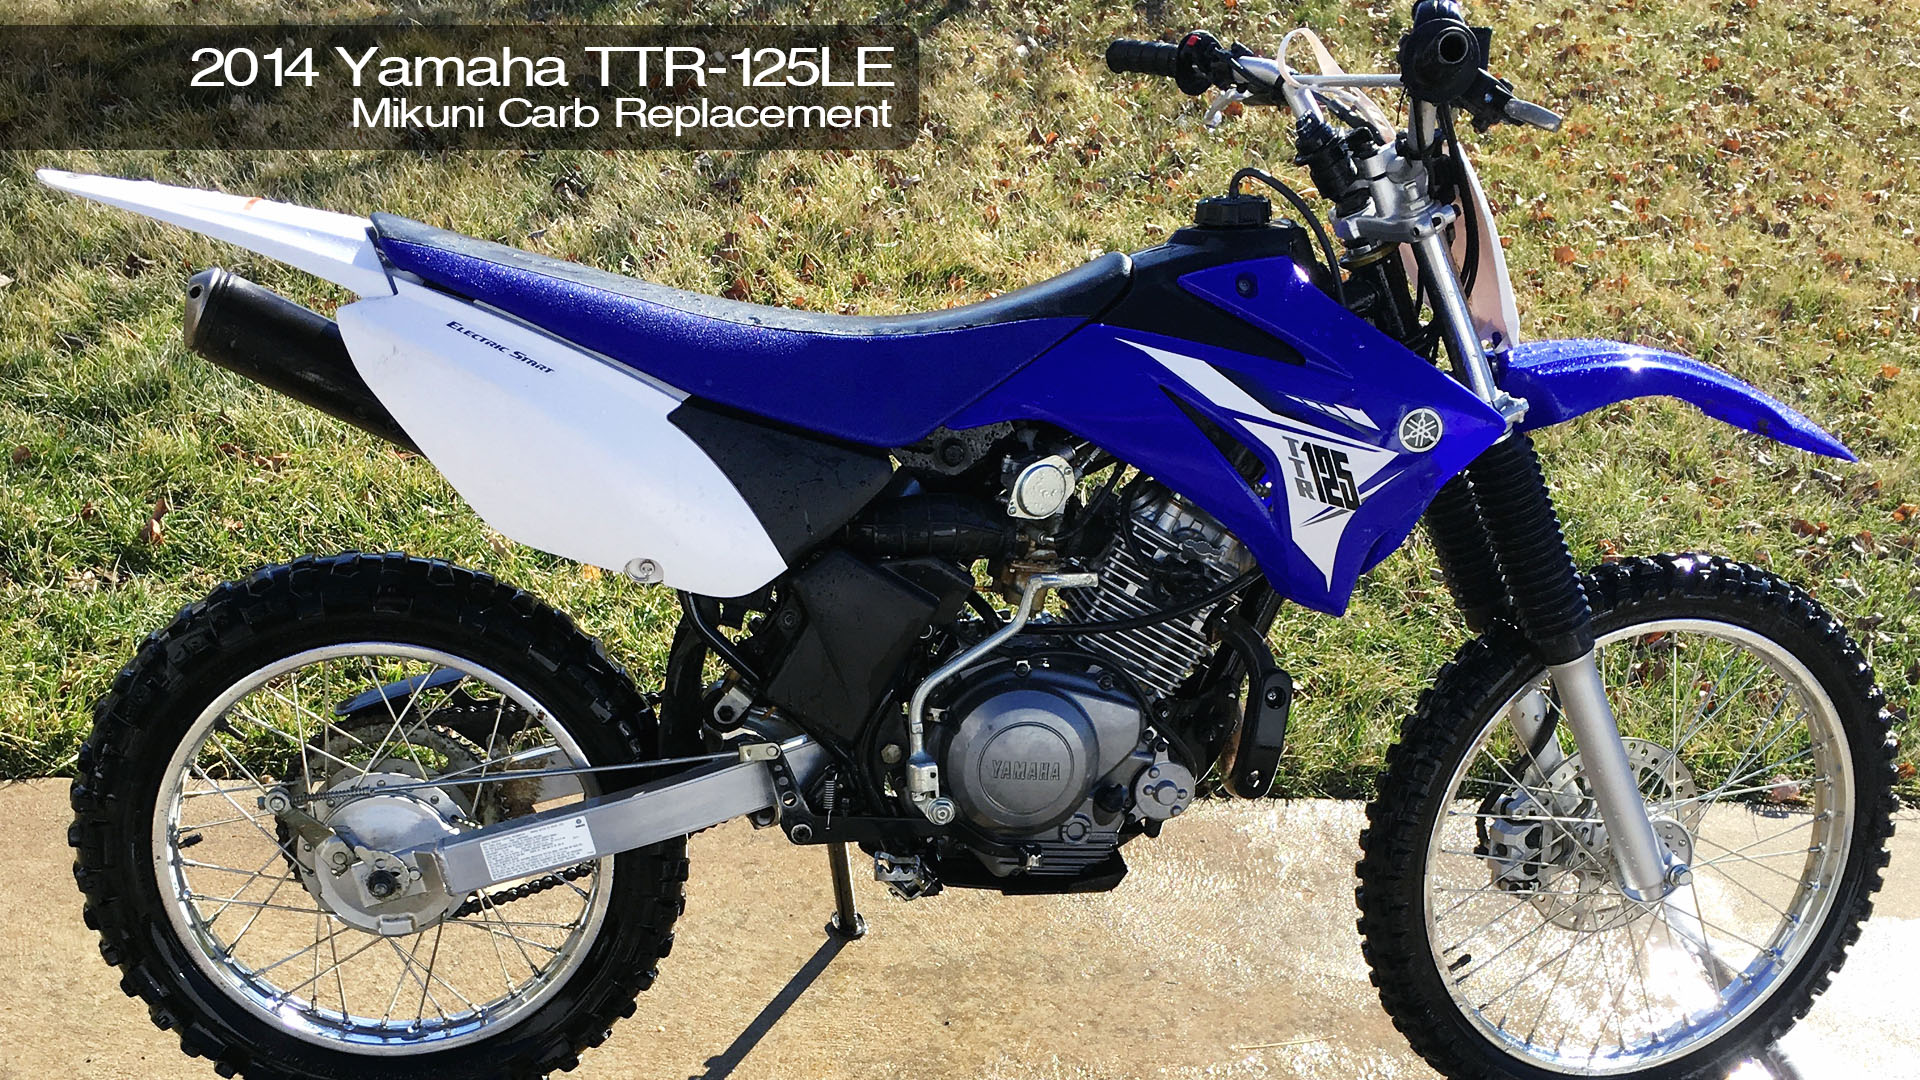 ttr125e wiring diagram basherdesigns howto 2014 yamaha ttr125 carb swap 31 2016 howto 2014 yamaha ttr125 carb swap infiniti wiring harness